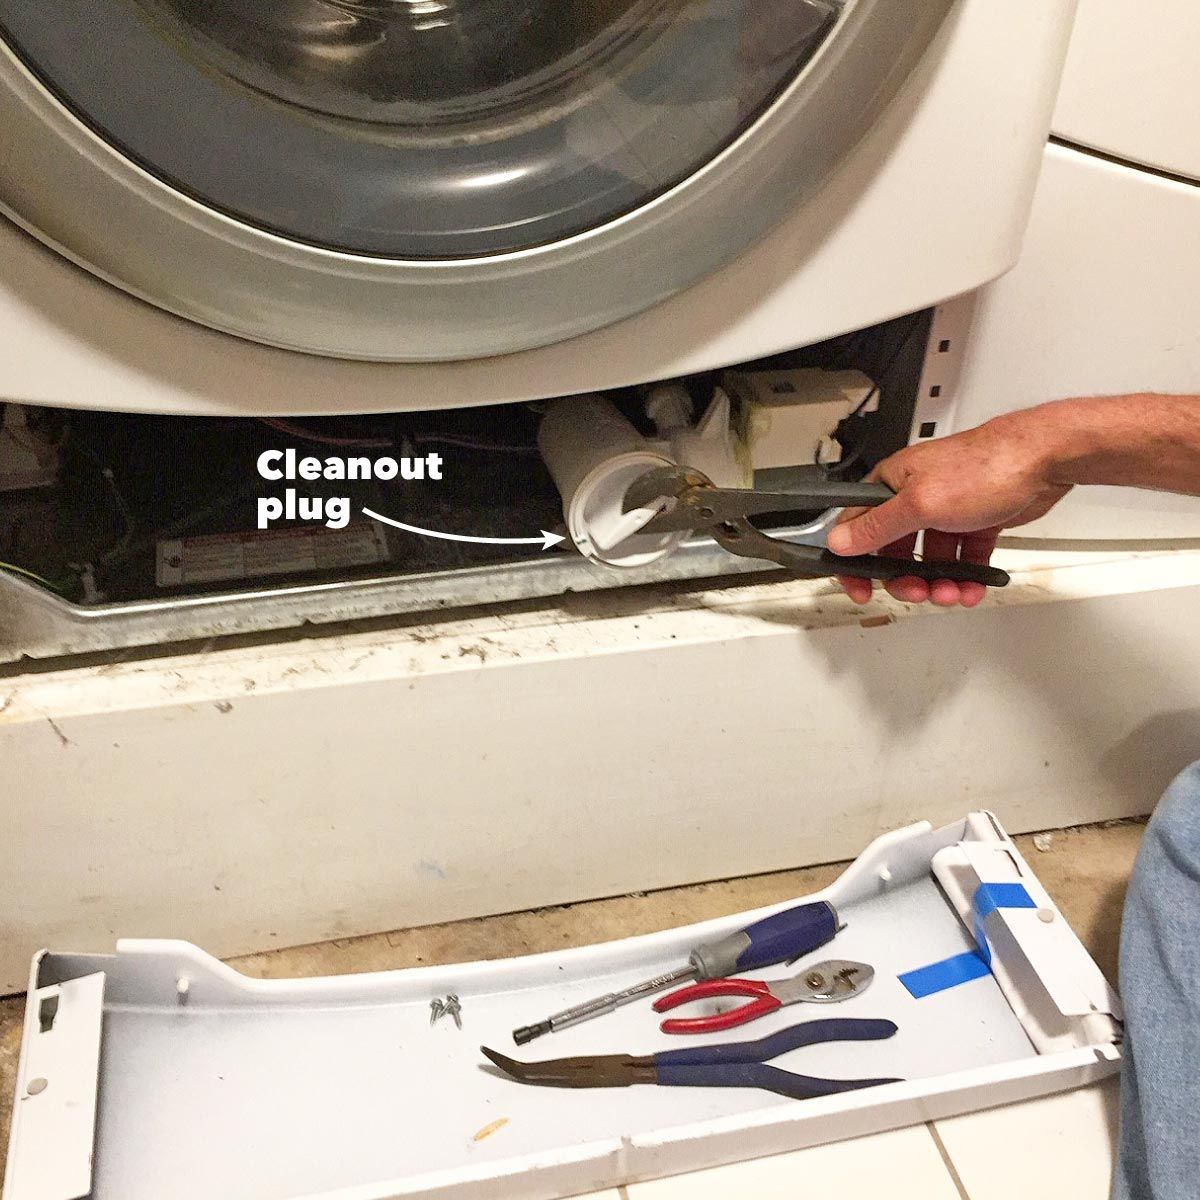 Pin On Simple Repairs - Dryer Lint Cleaner